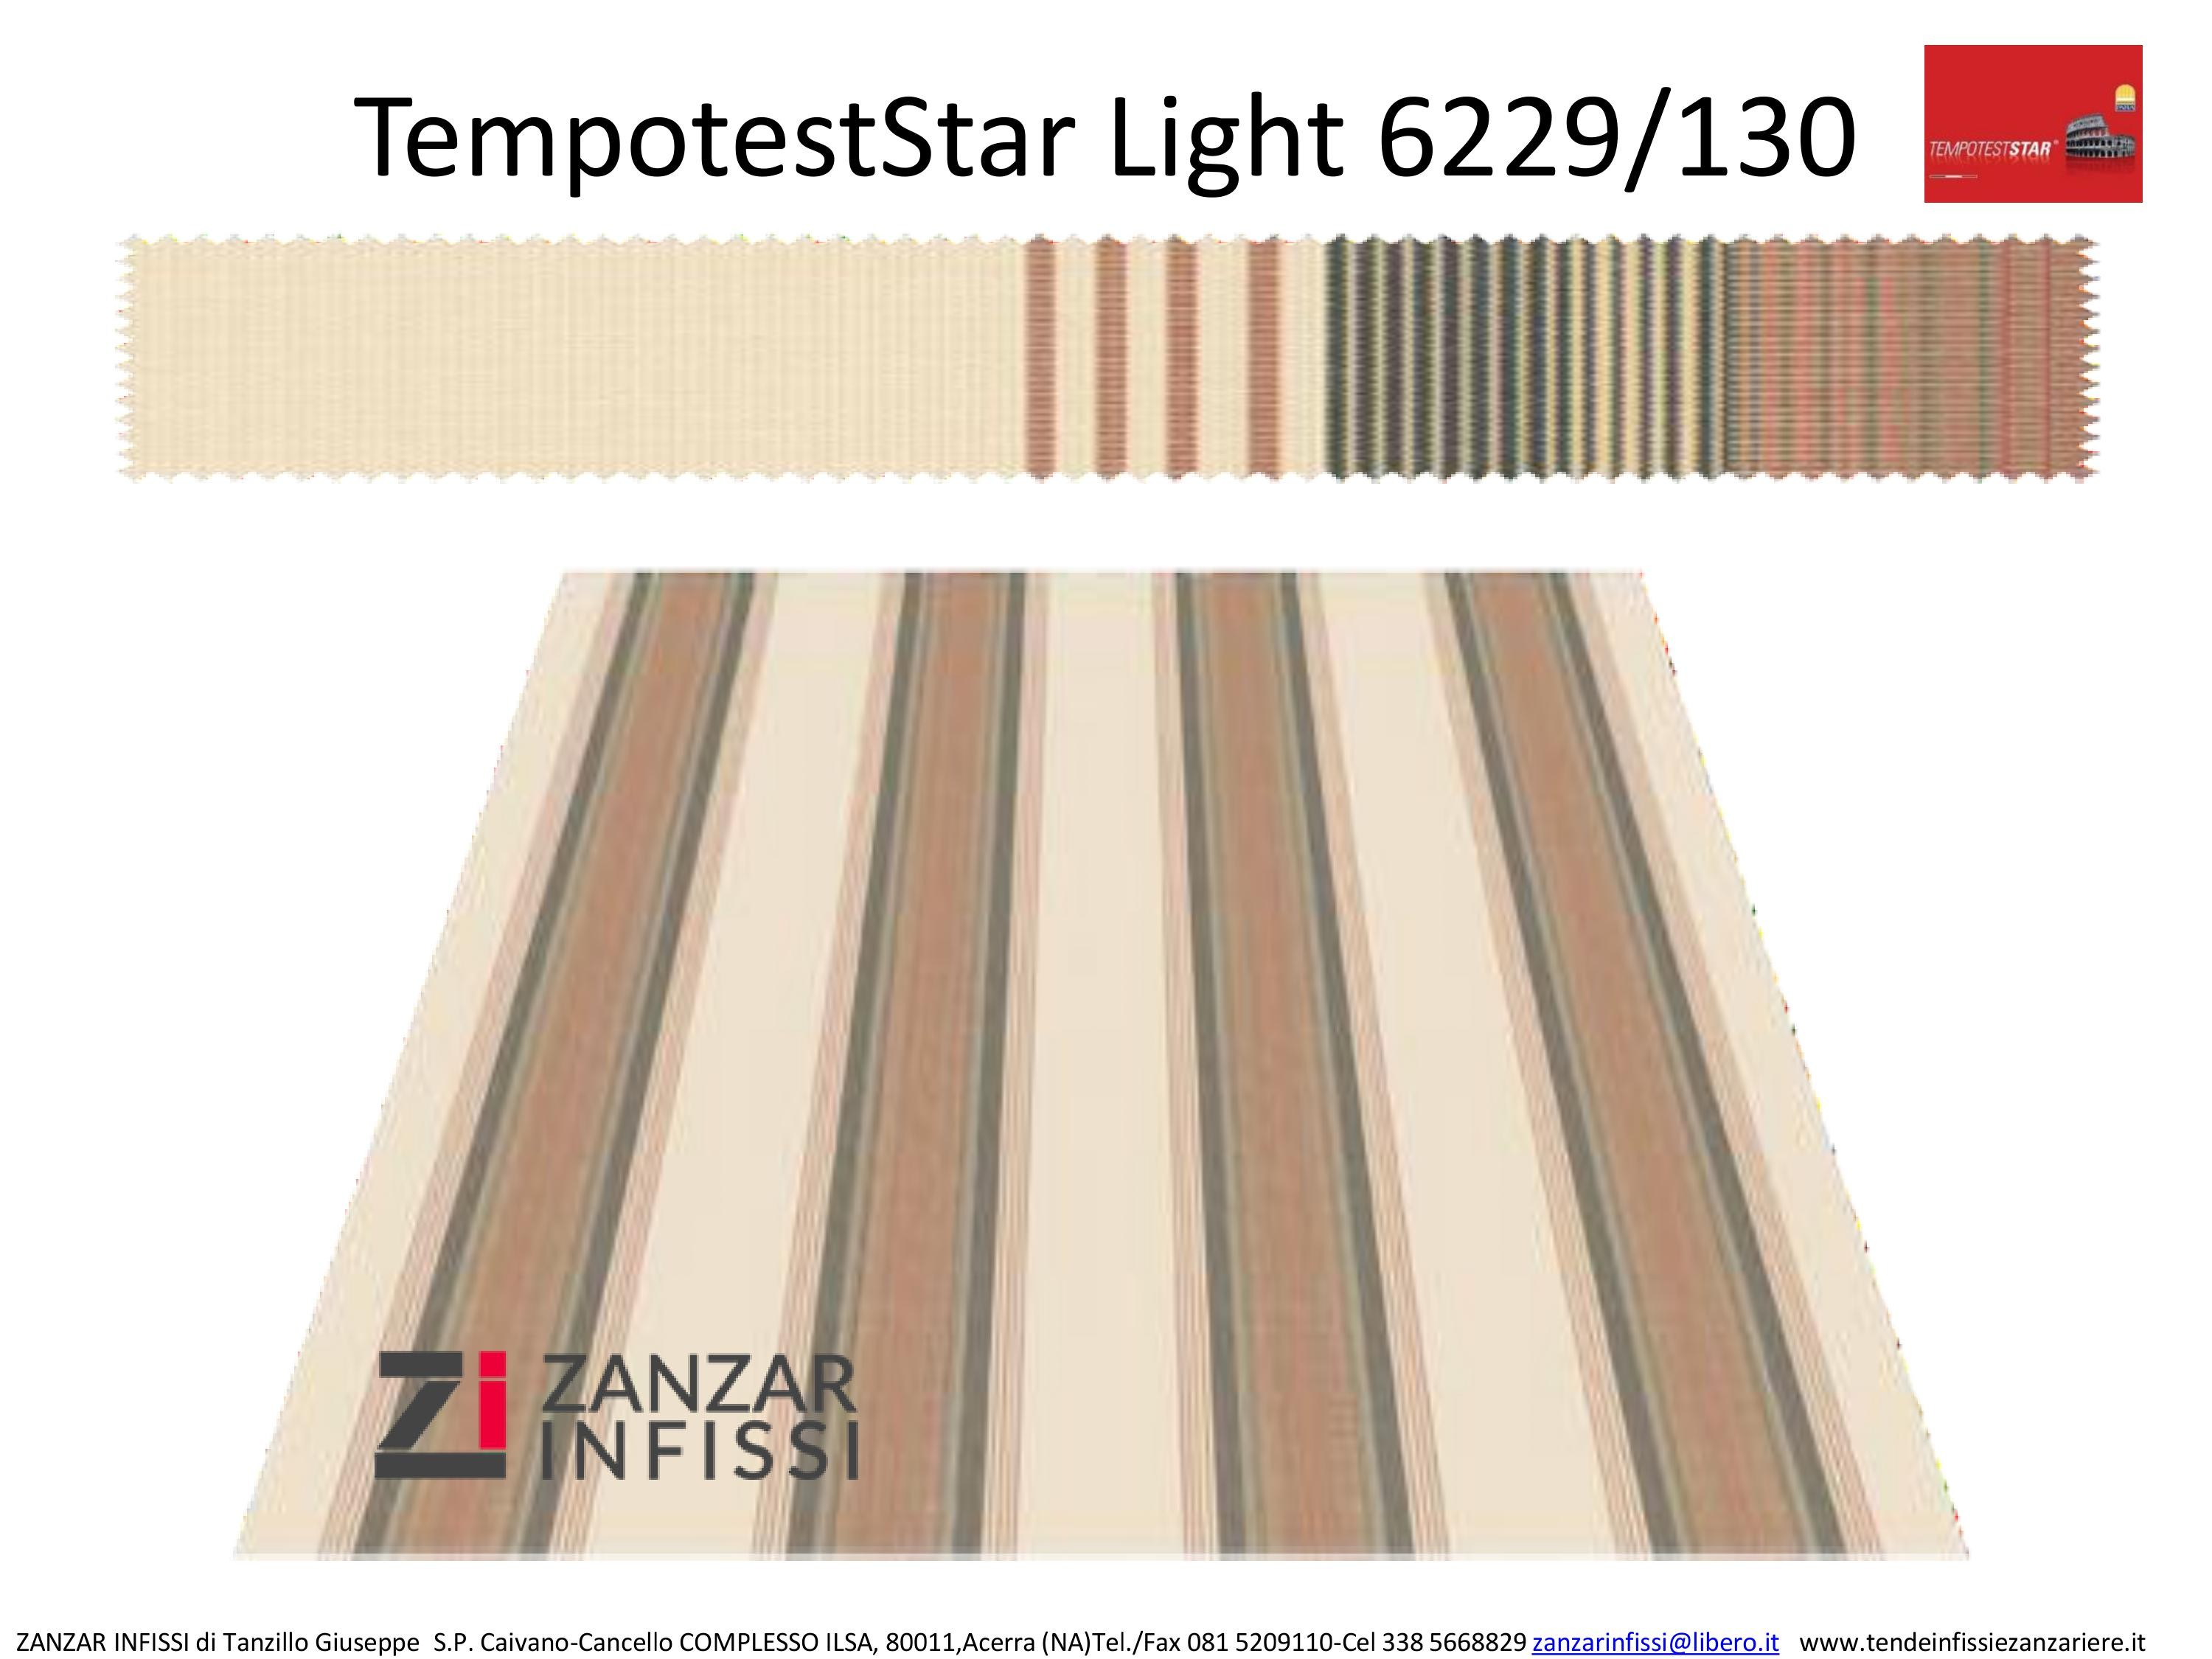 Tempotest star light 6229/130